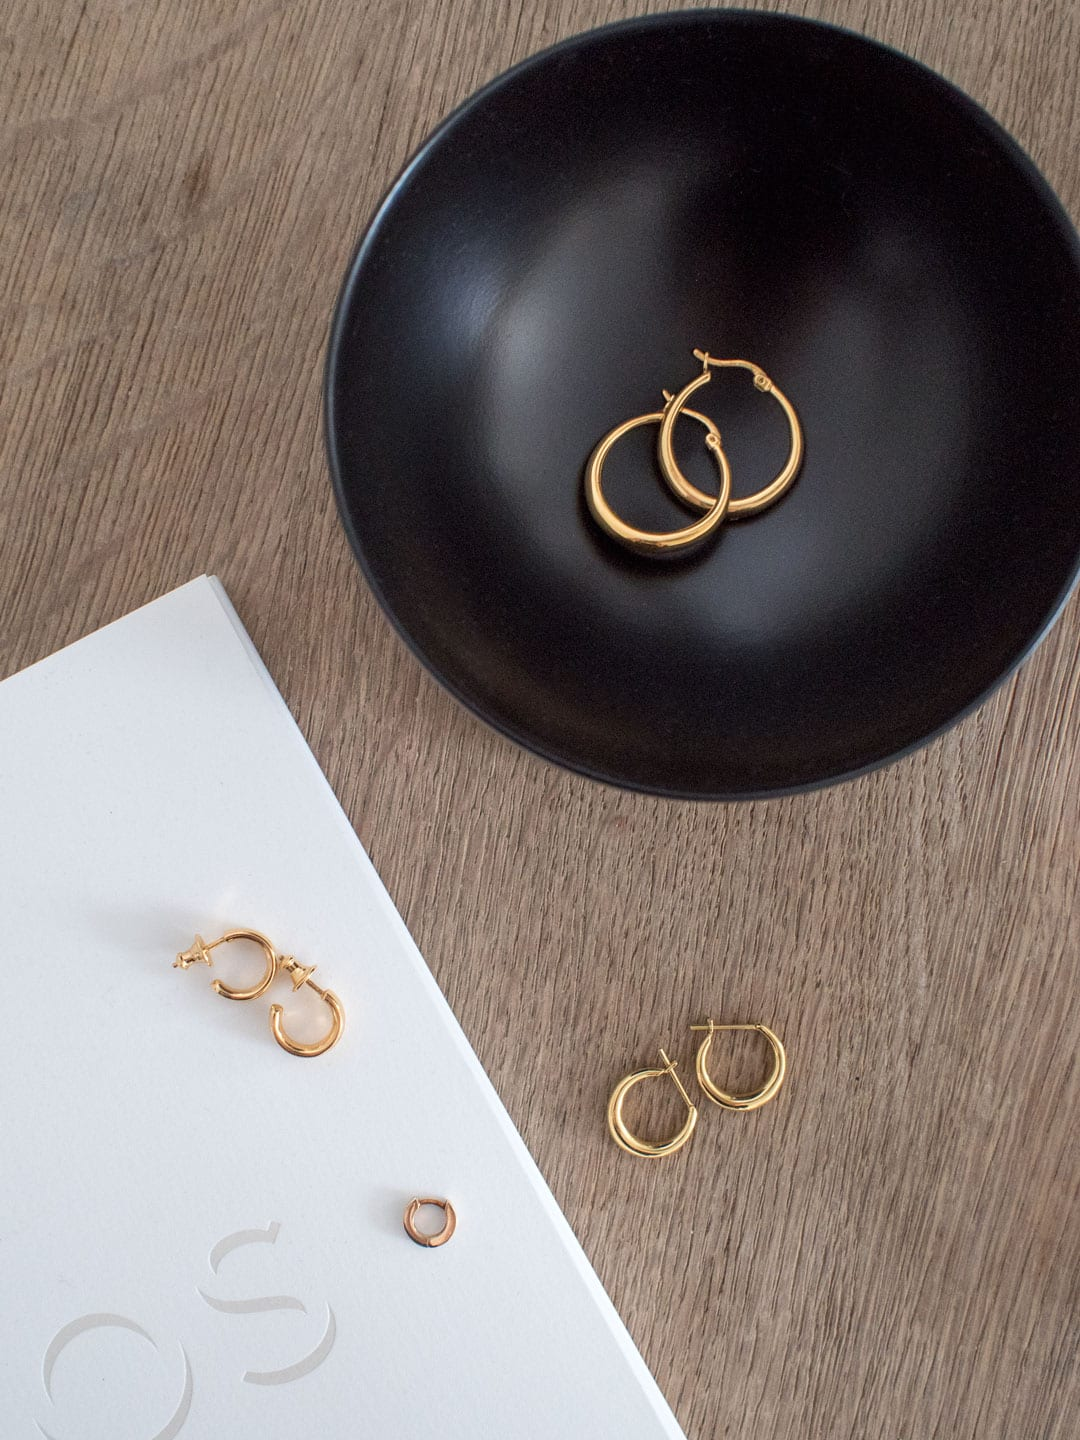 Minimal Gold Hoop Earrings UK